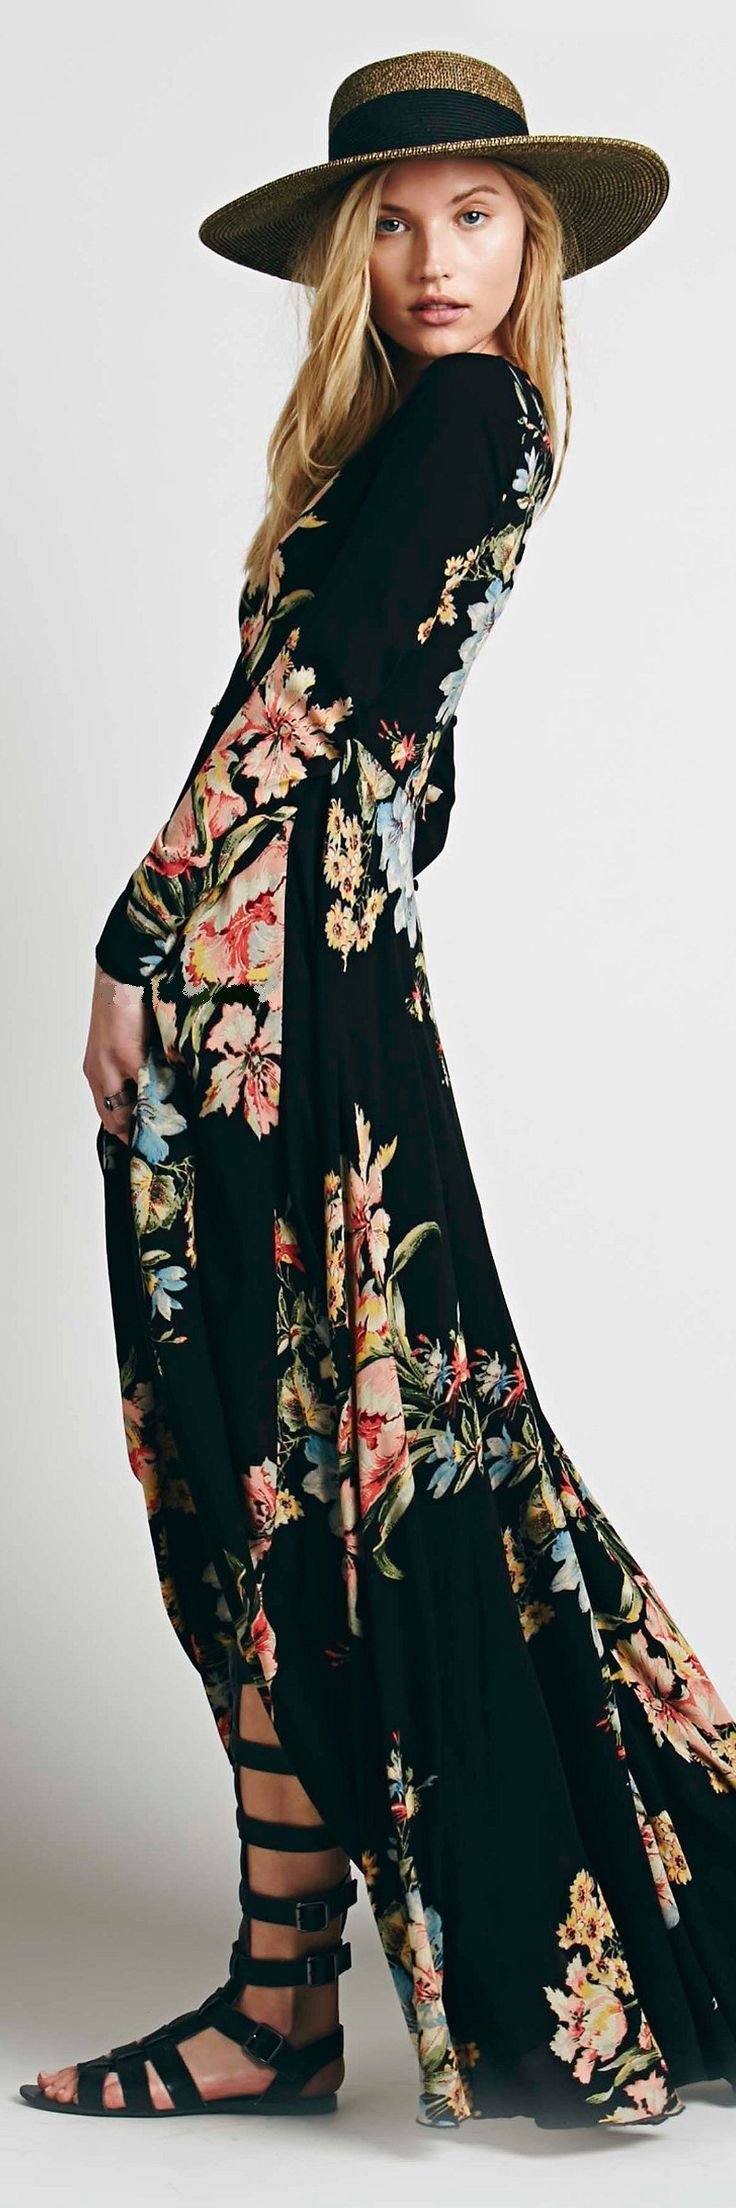 Floral maxi dress straw hat wblack band and black gladiator